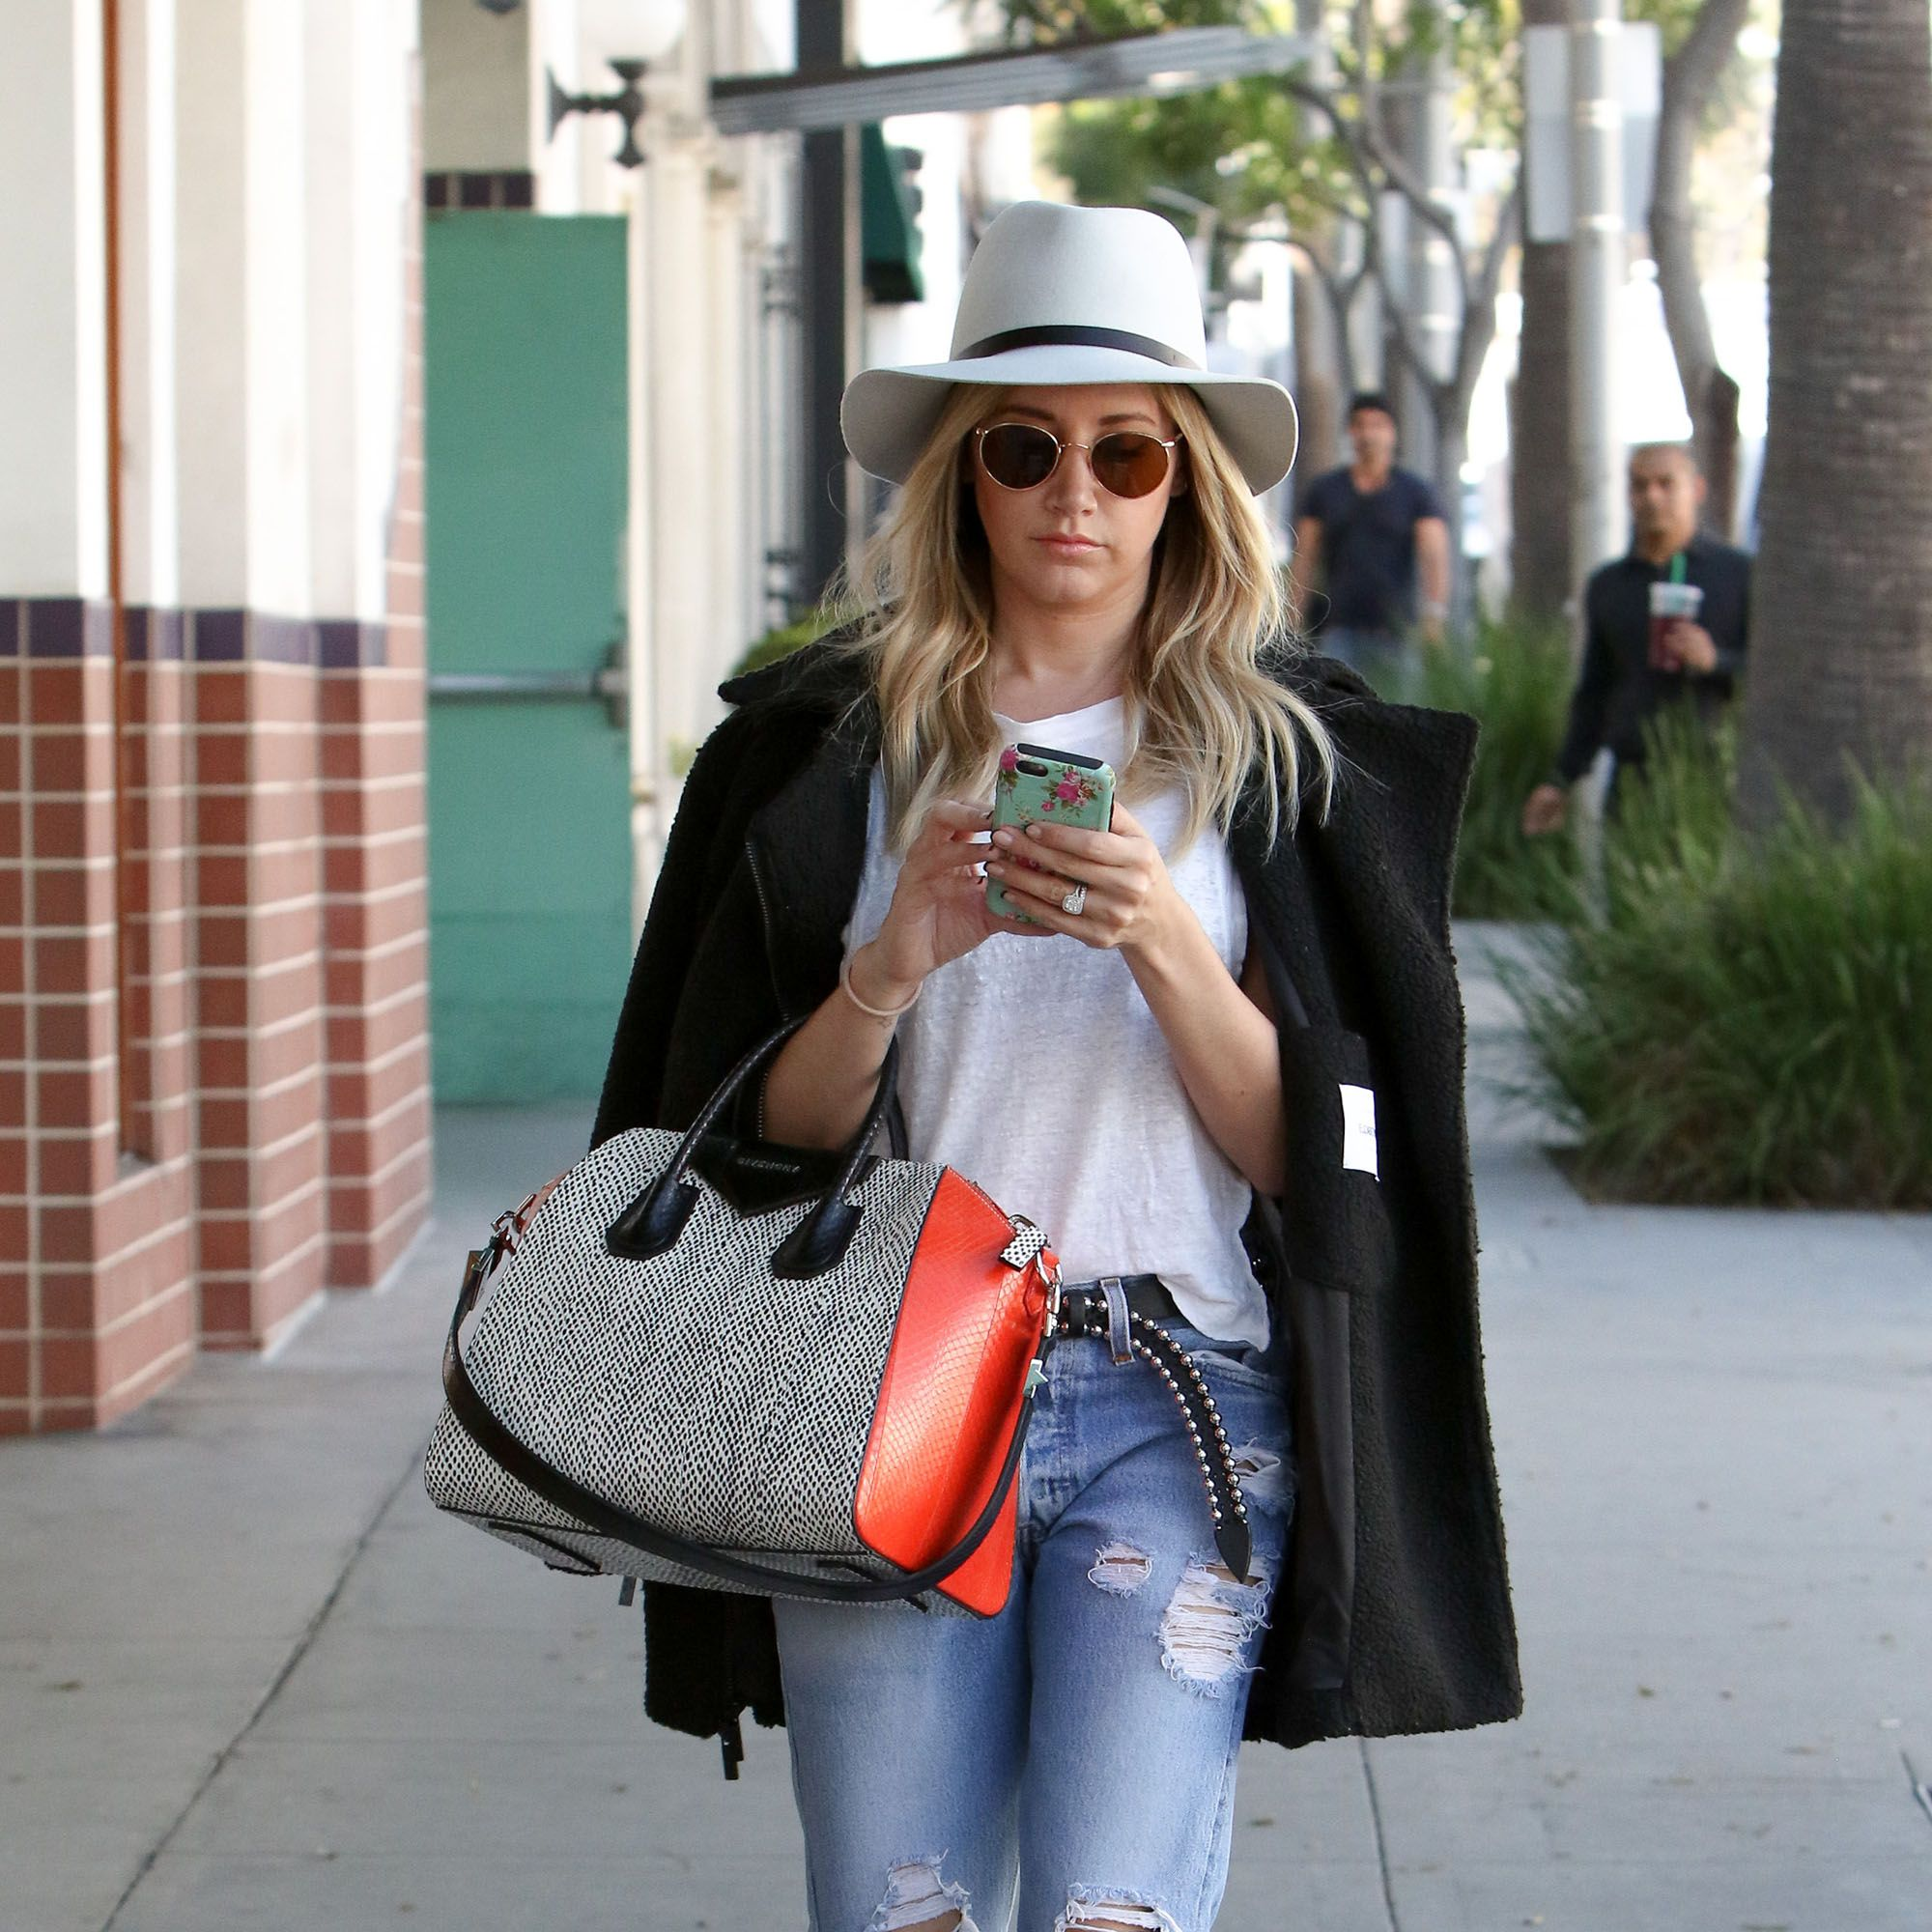 LOS ANGELES, CA - MARCH 12: Ashley Tisdale is seen in Beverly Hills on March 12, 2015 in Los Angeles, California.  (Photo by Bauer-Griffin/GC Images)